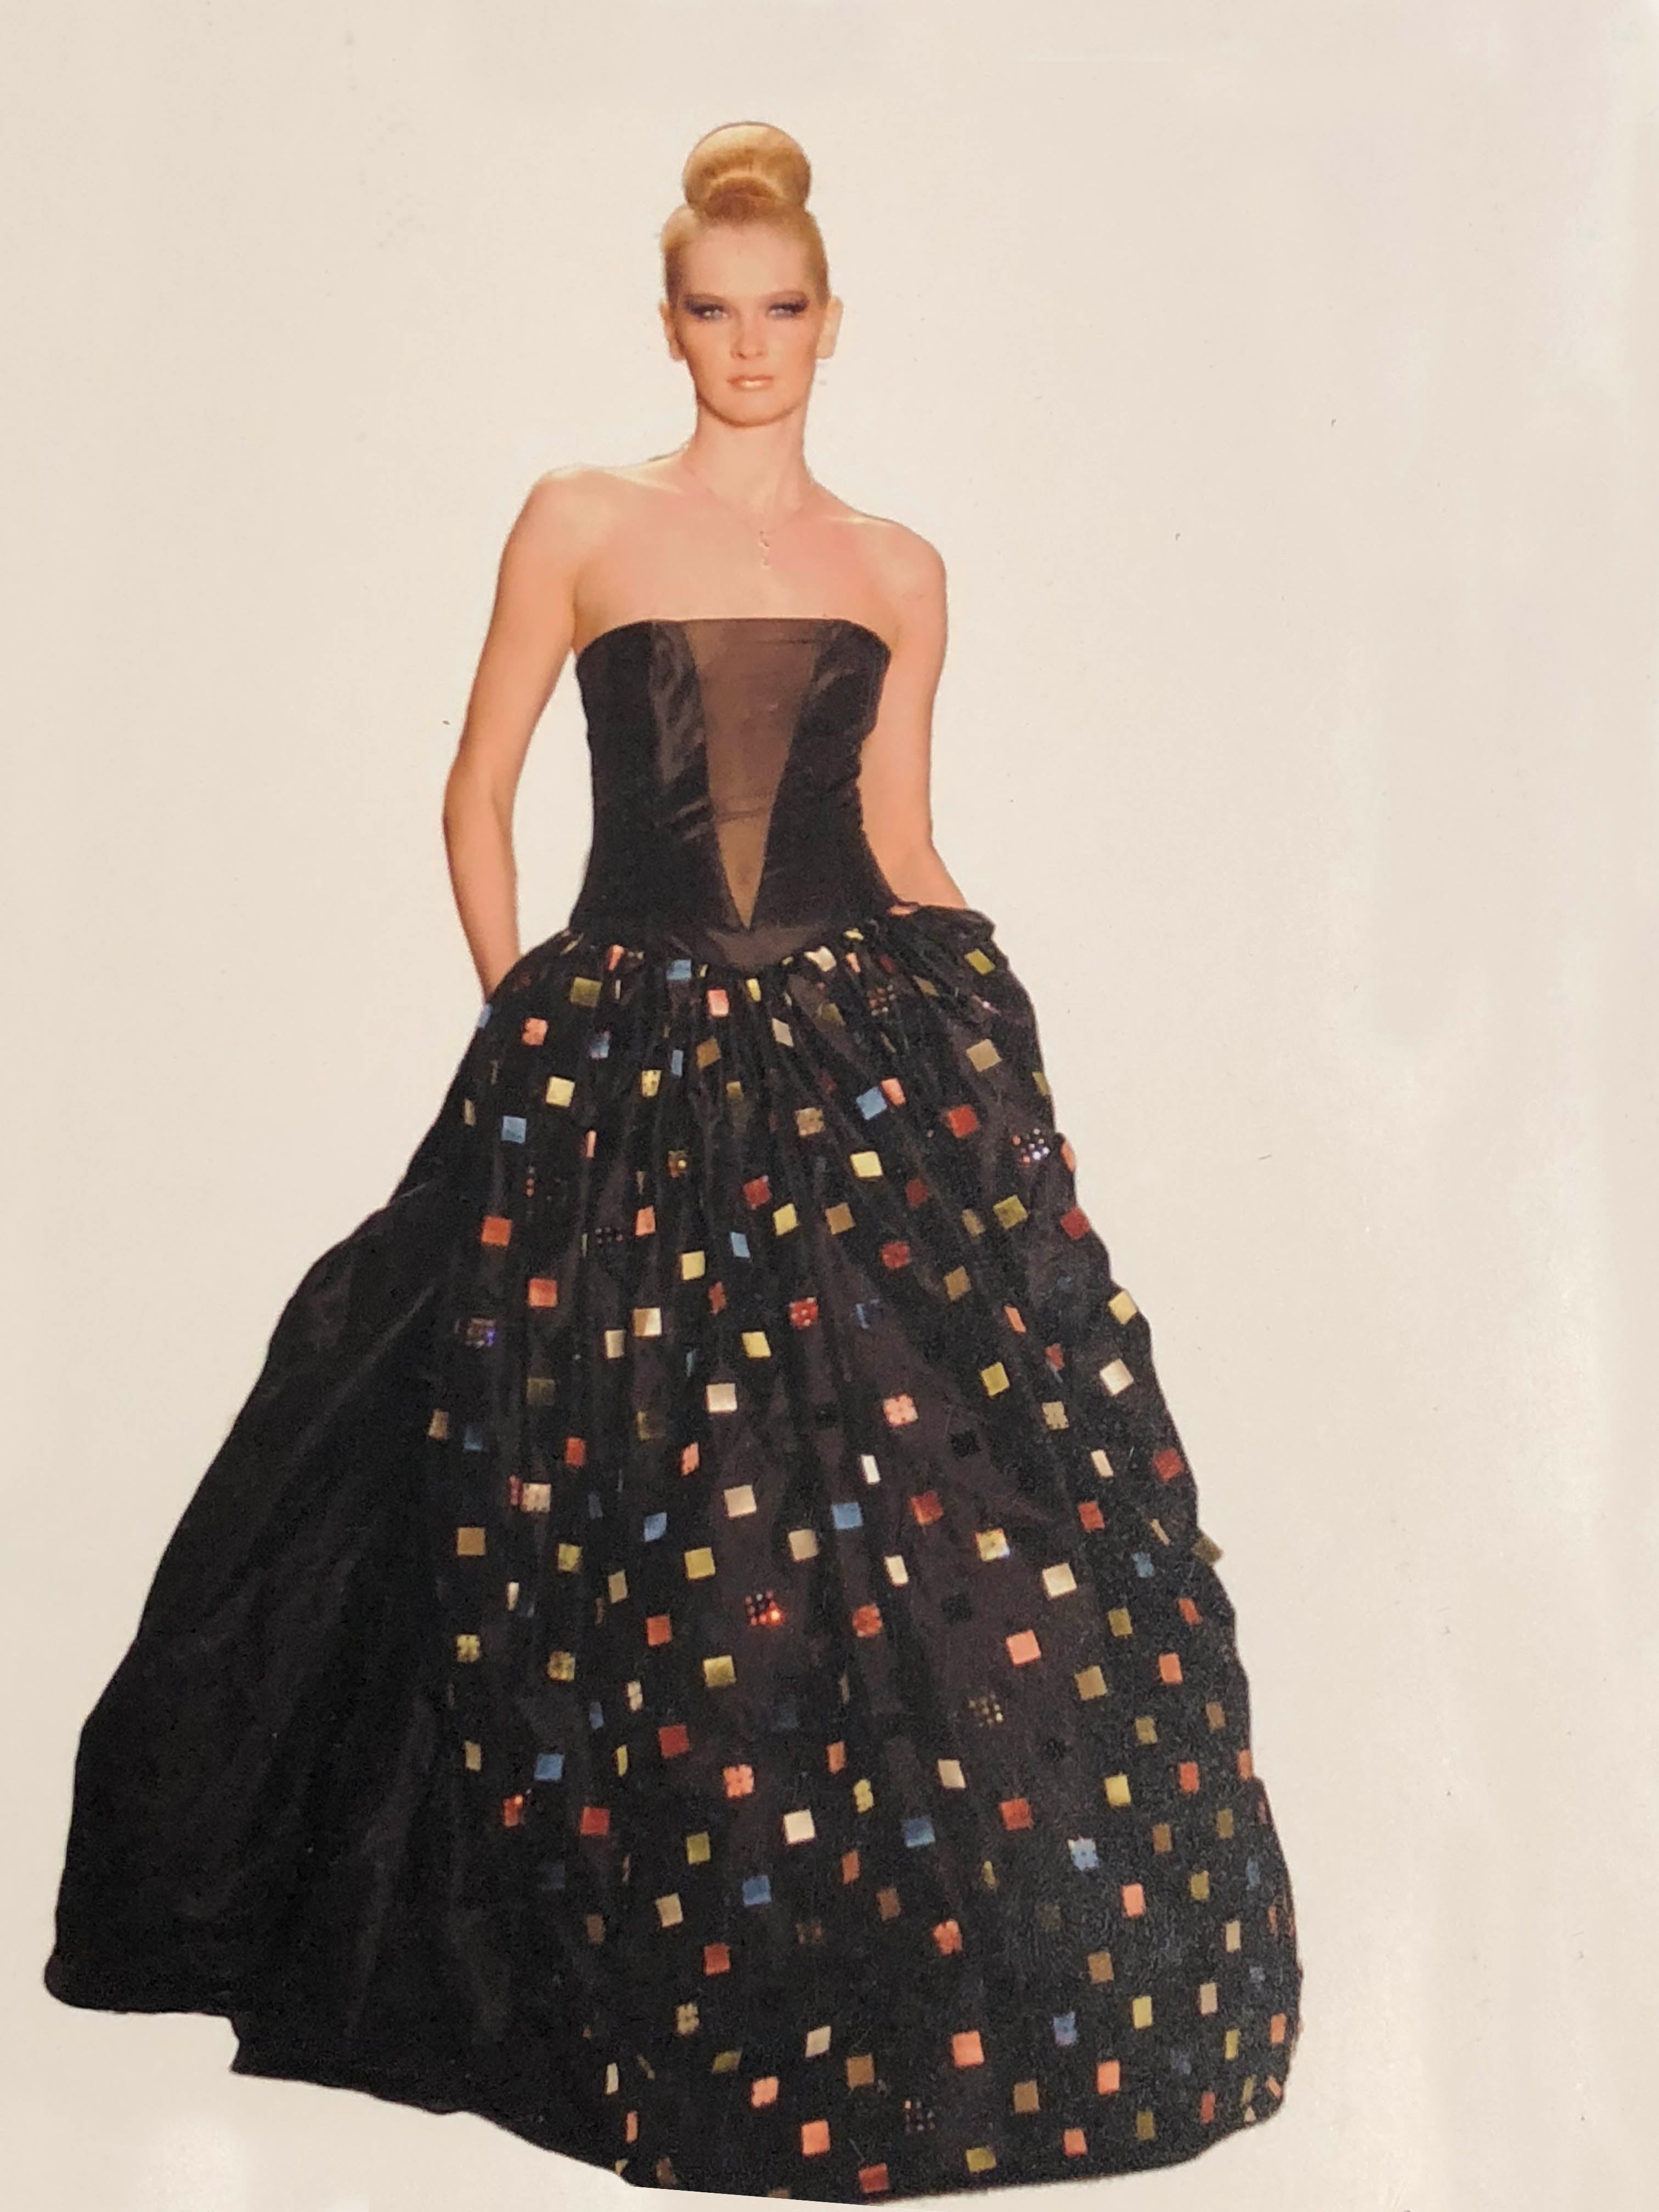 Silk taffeta strapless boned bodice, with boxes of colorful suede and rhinestone